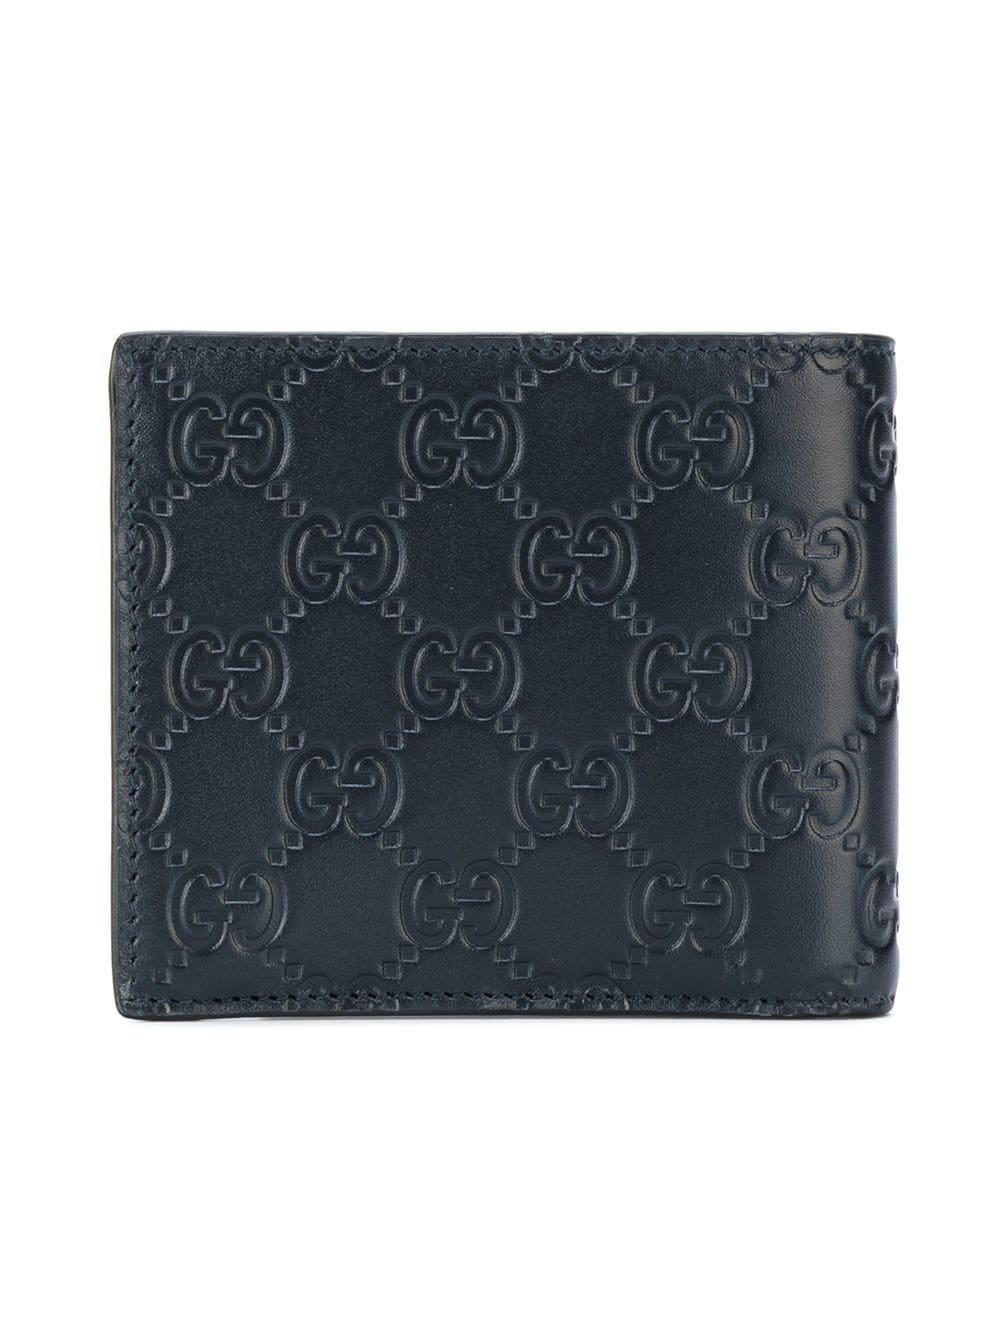 0b77f0eac7bb Lyst - Gucci GG Signature Wallet in Blue for Men - Save 10%